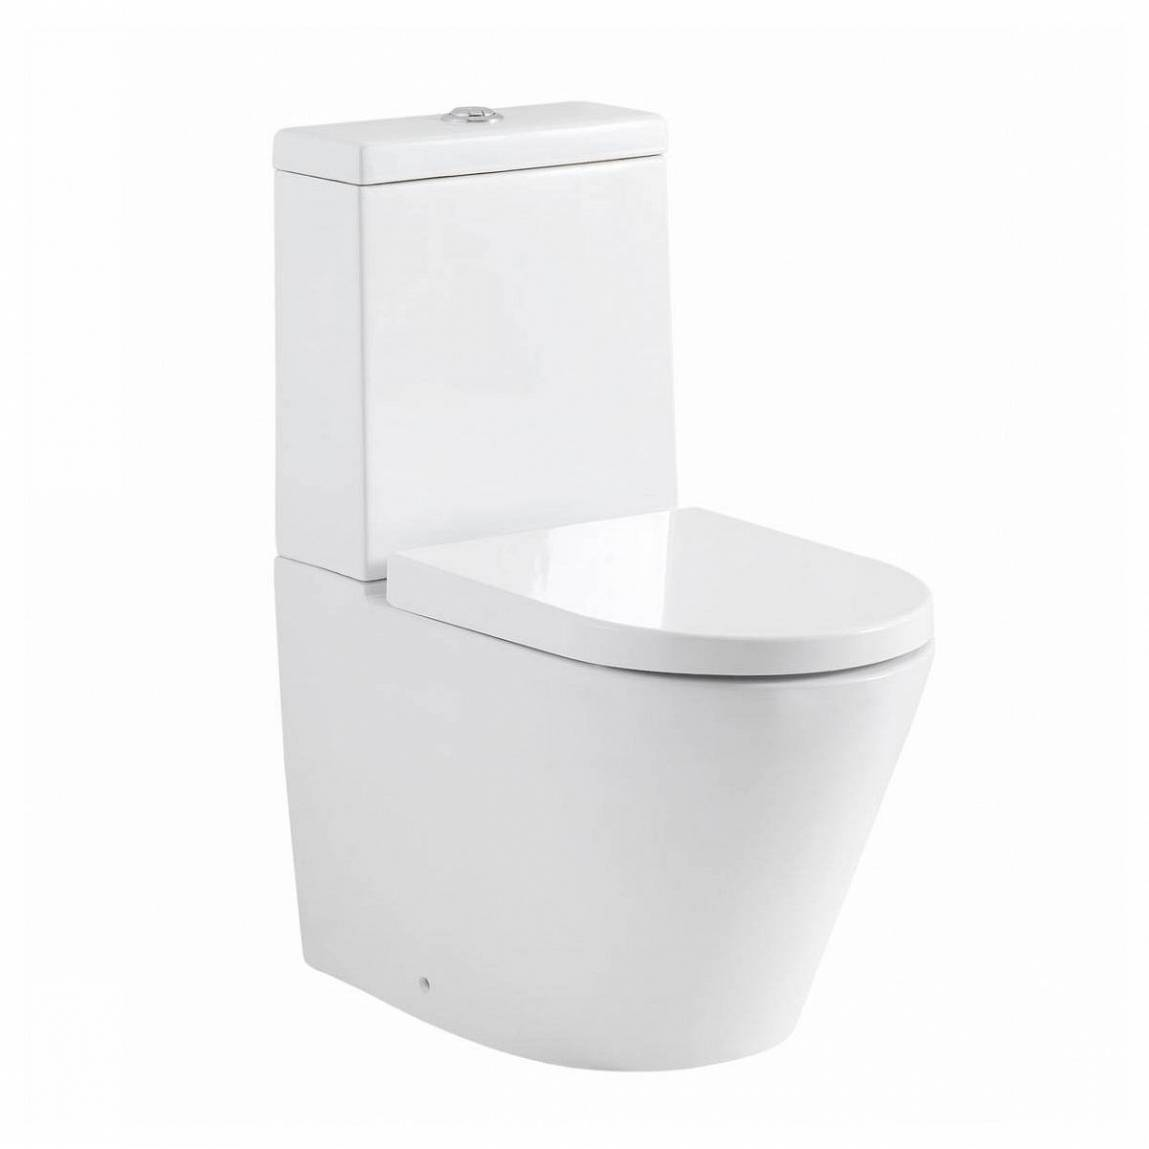 Image of Demar Close Coupled Toilet inc Soft Close Seat